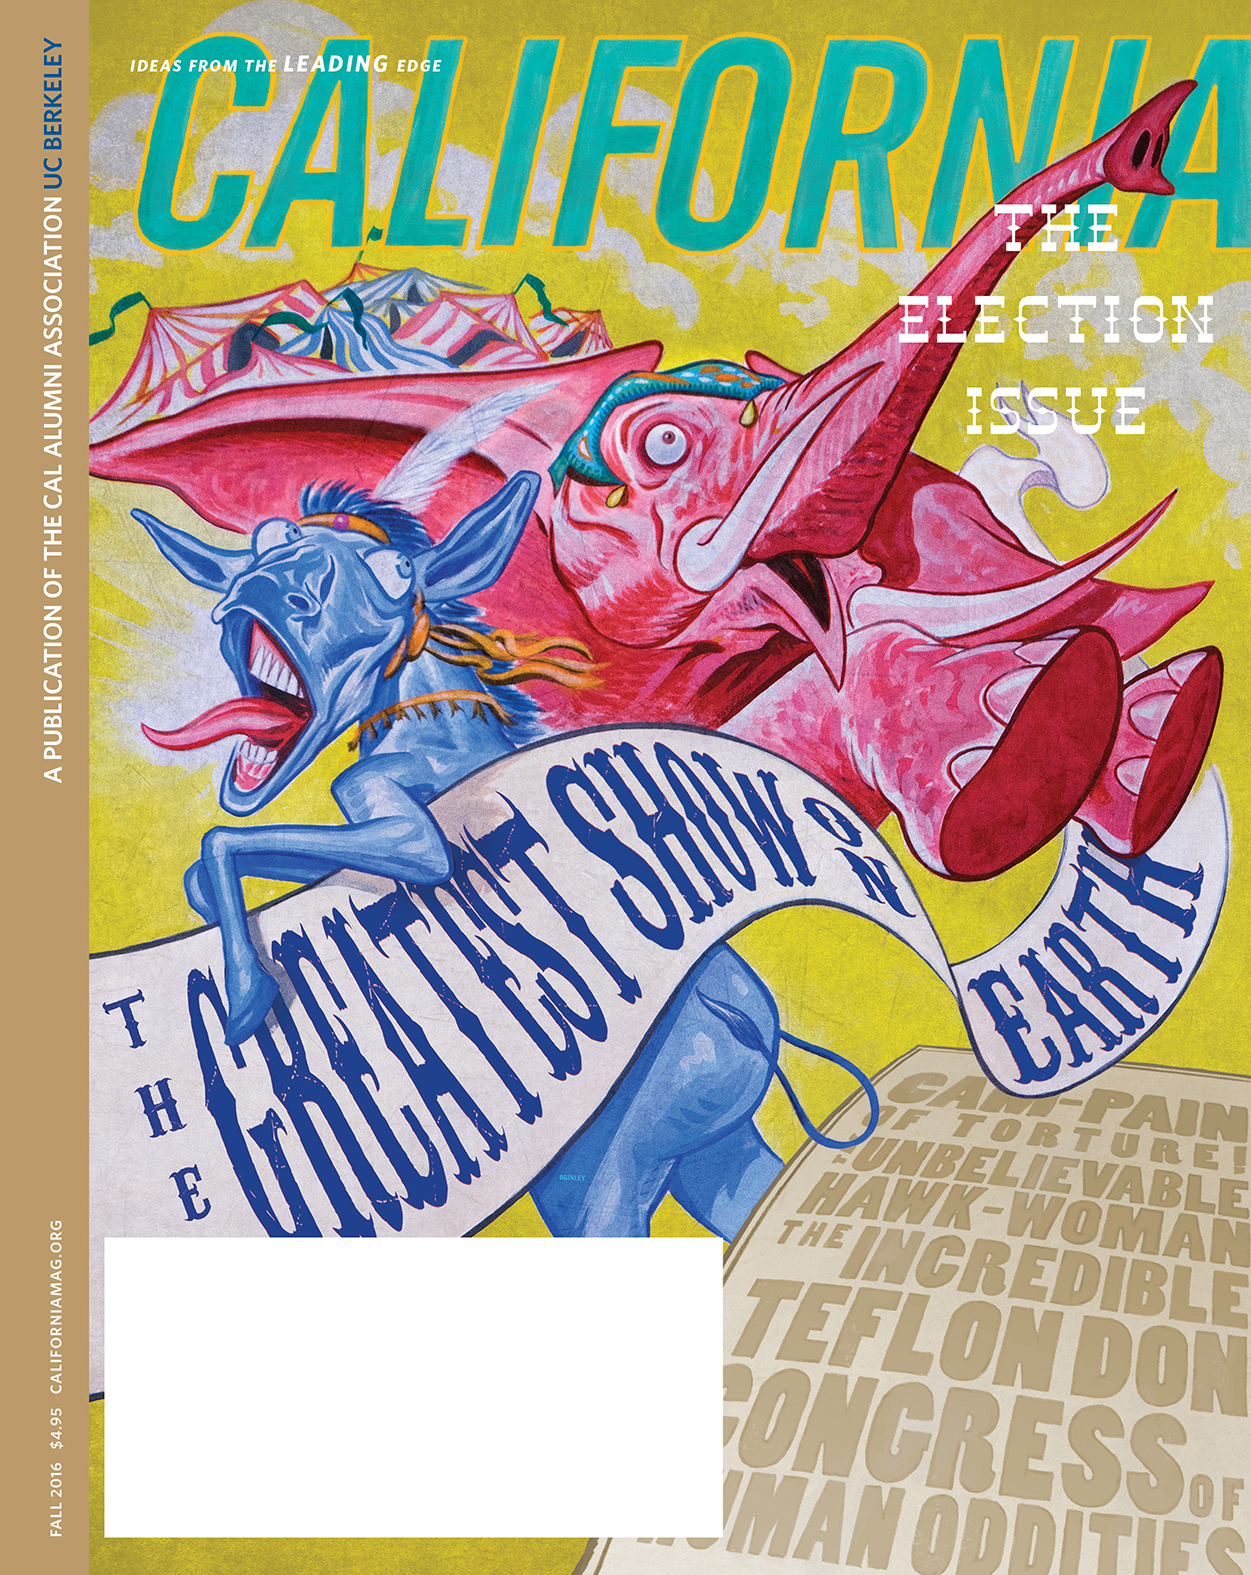 The Greatest Show On Earth   | UC Berkeley /  California Magazine  Election Issue cover Fall 2016